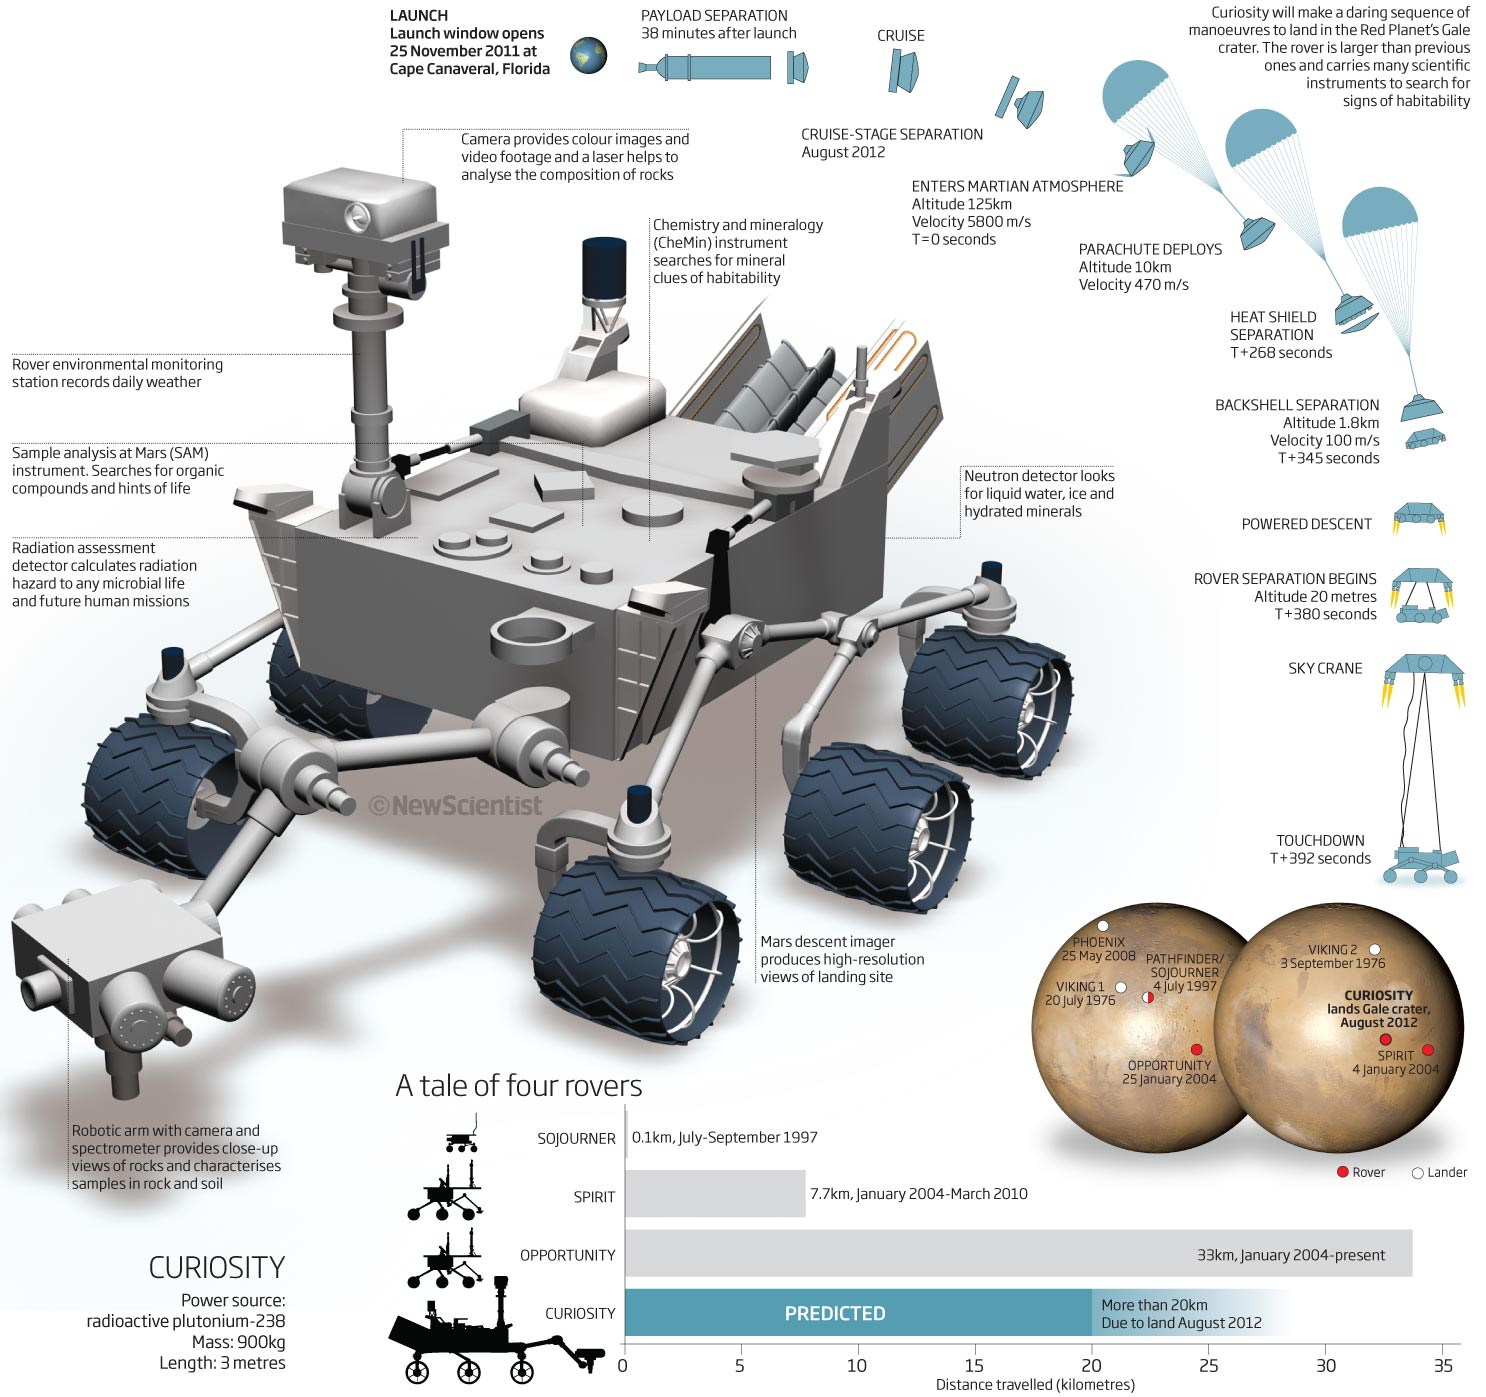 space probes rovers for haumea - photo #49